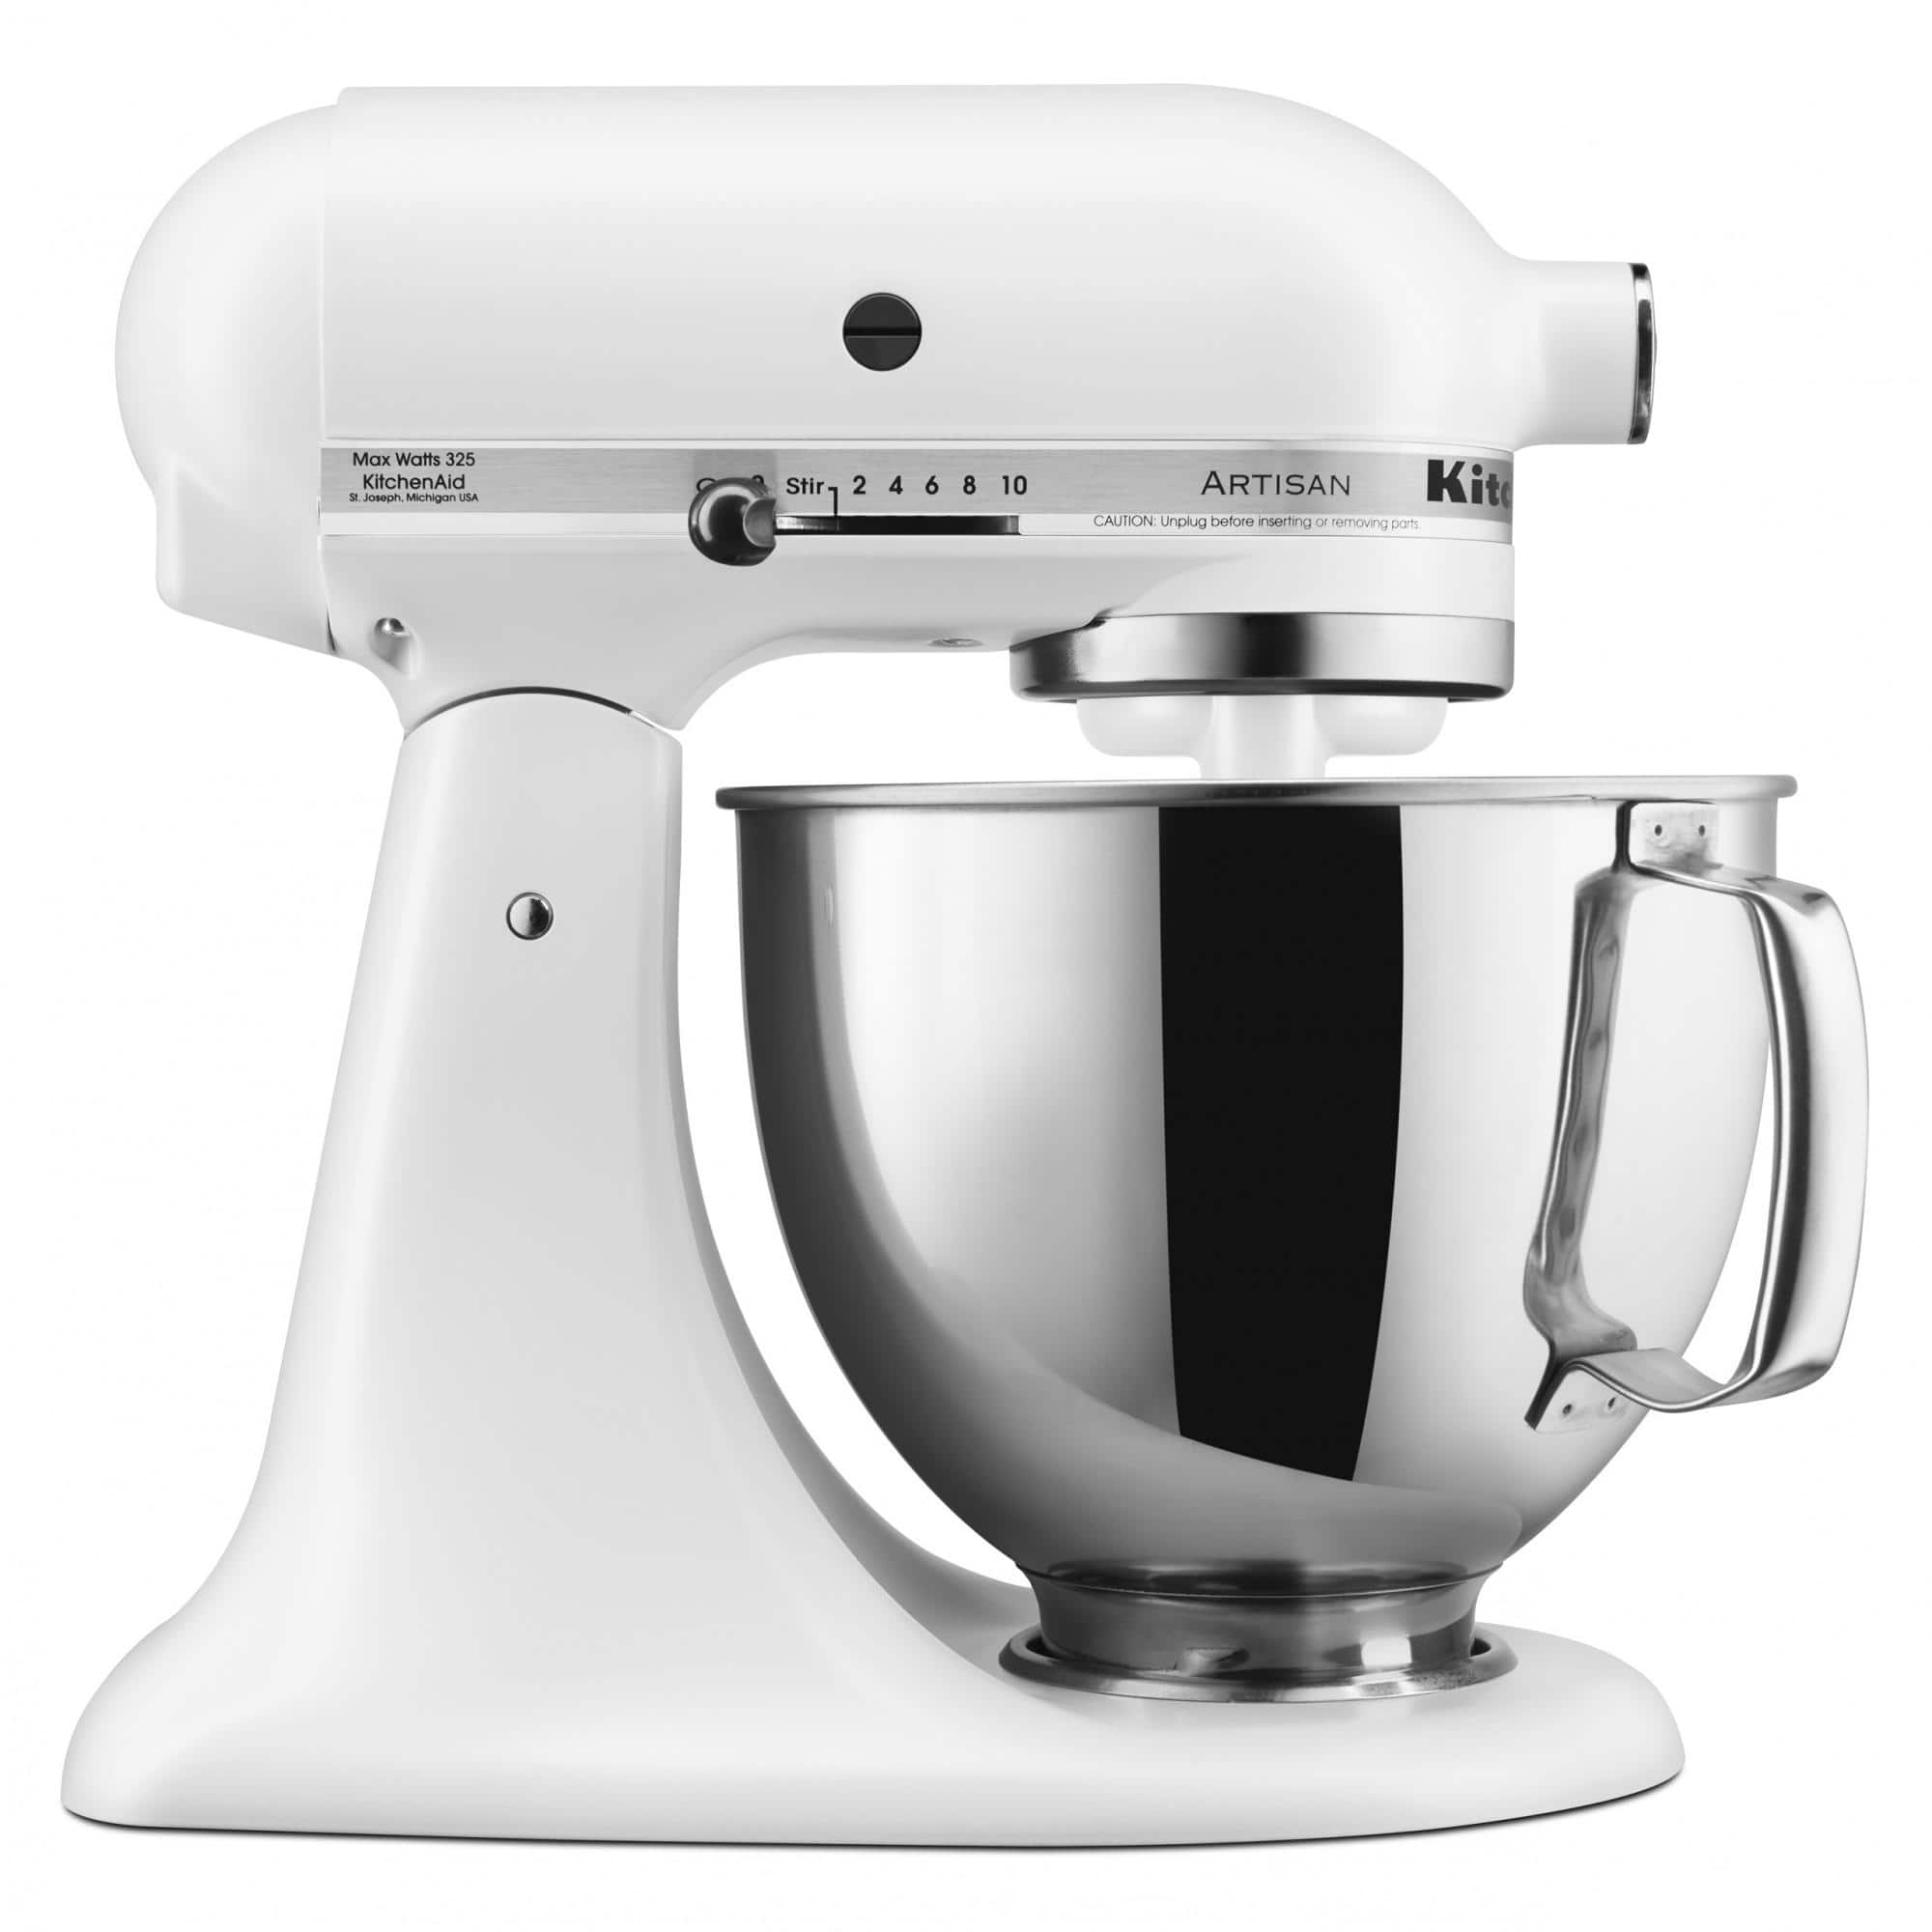 KitchenAid Artisan Series 5 Quart Tilt-Head Stand Mixer, Various Colors - $219.99